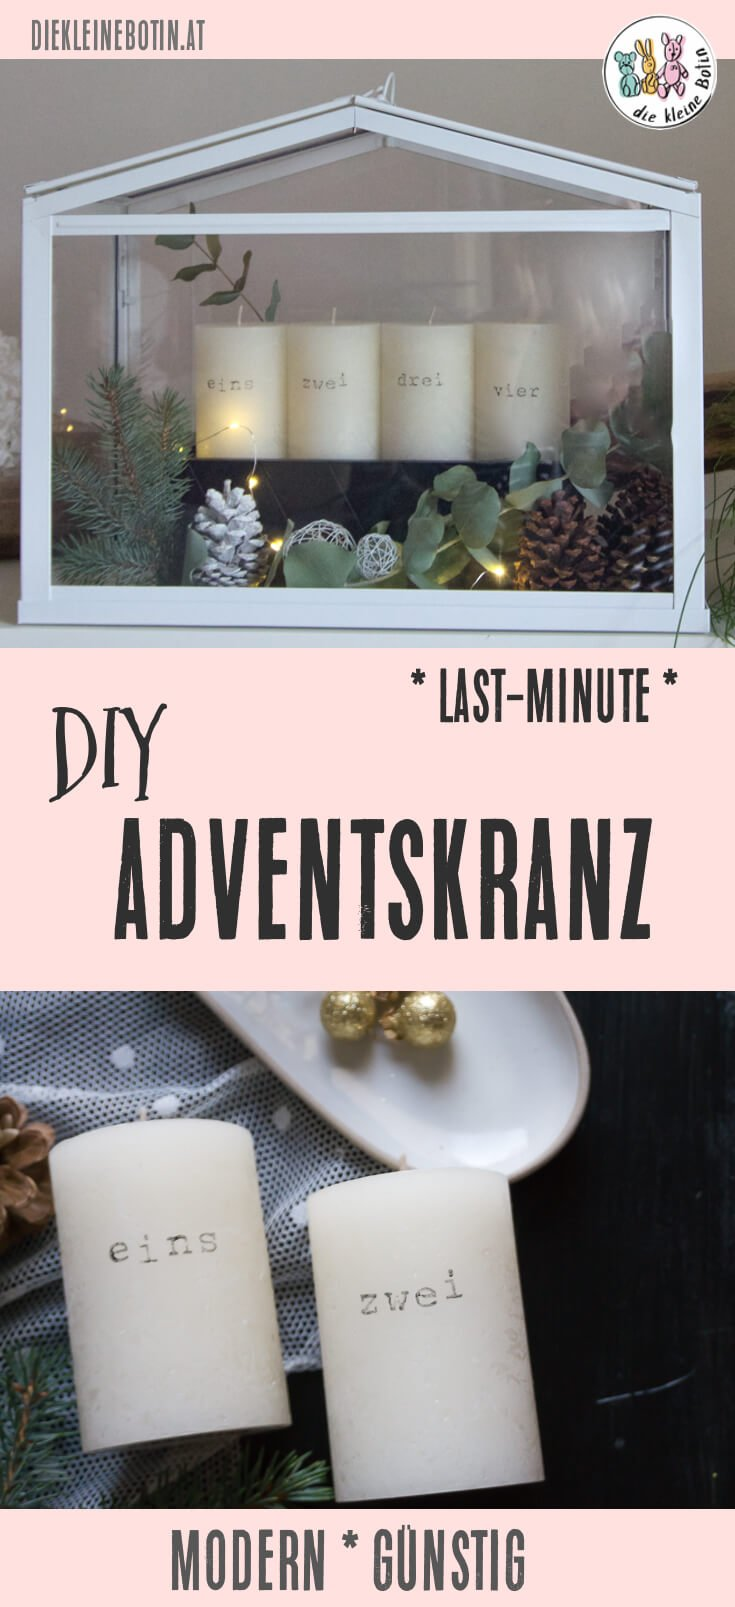 adventskranz diy pinterest